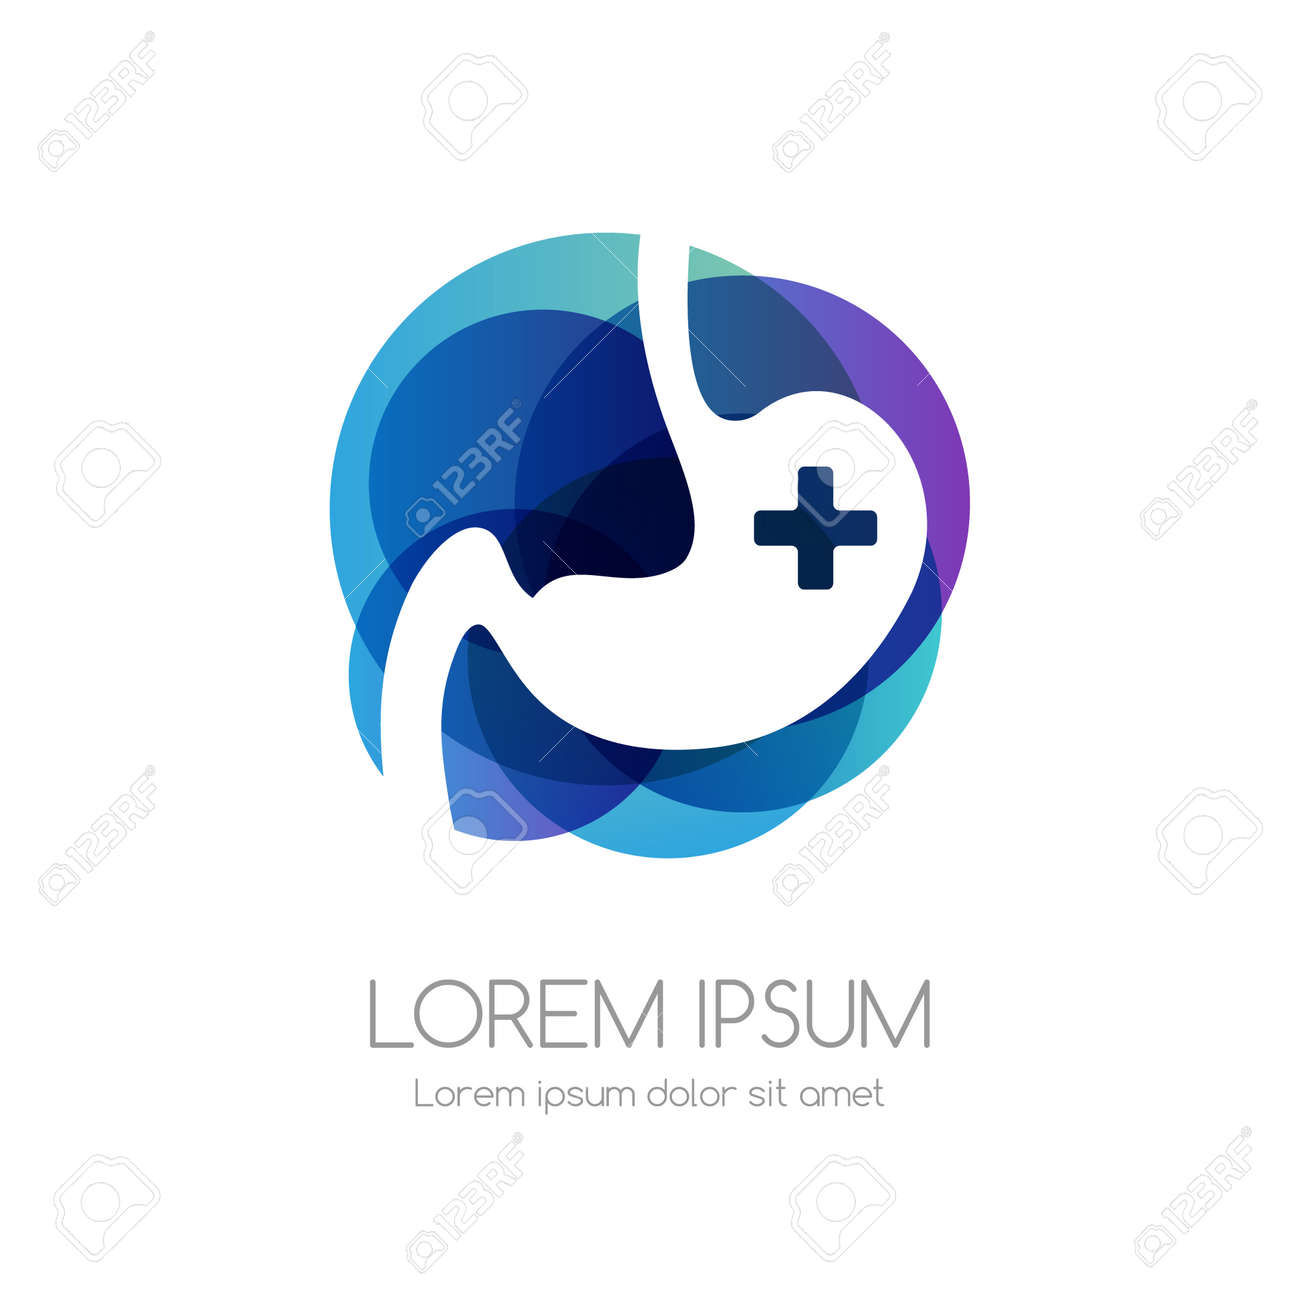 Stomach with cross and blue abstract shape. Medical emblem. Health care vector icon. - 158145342